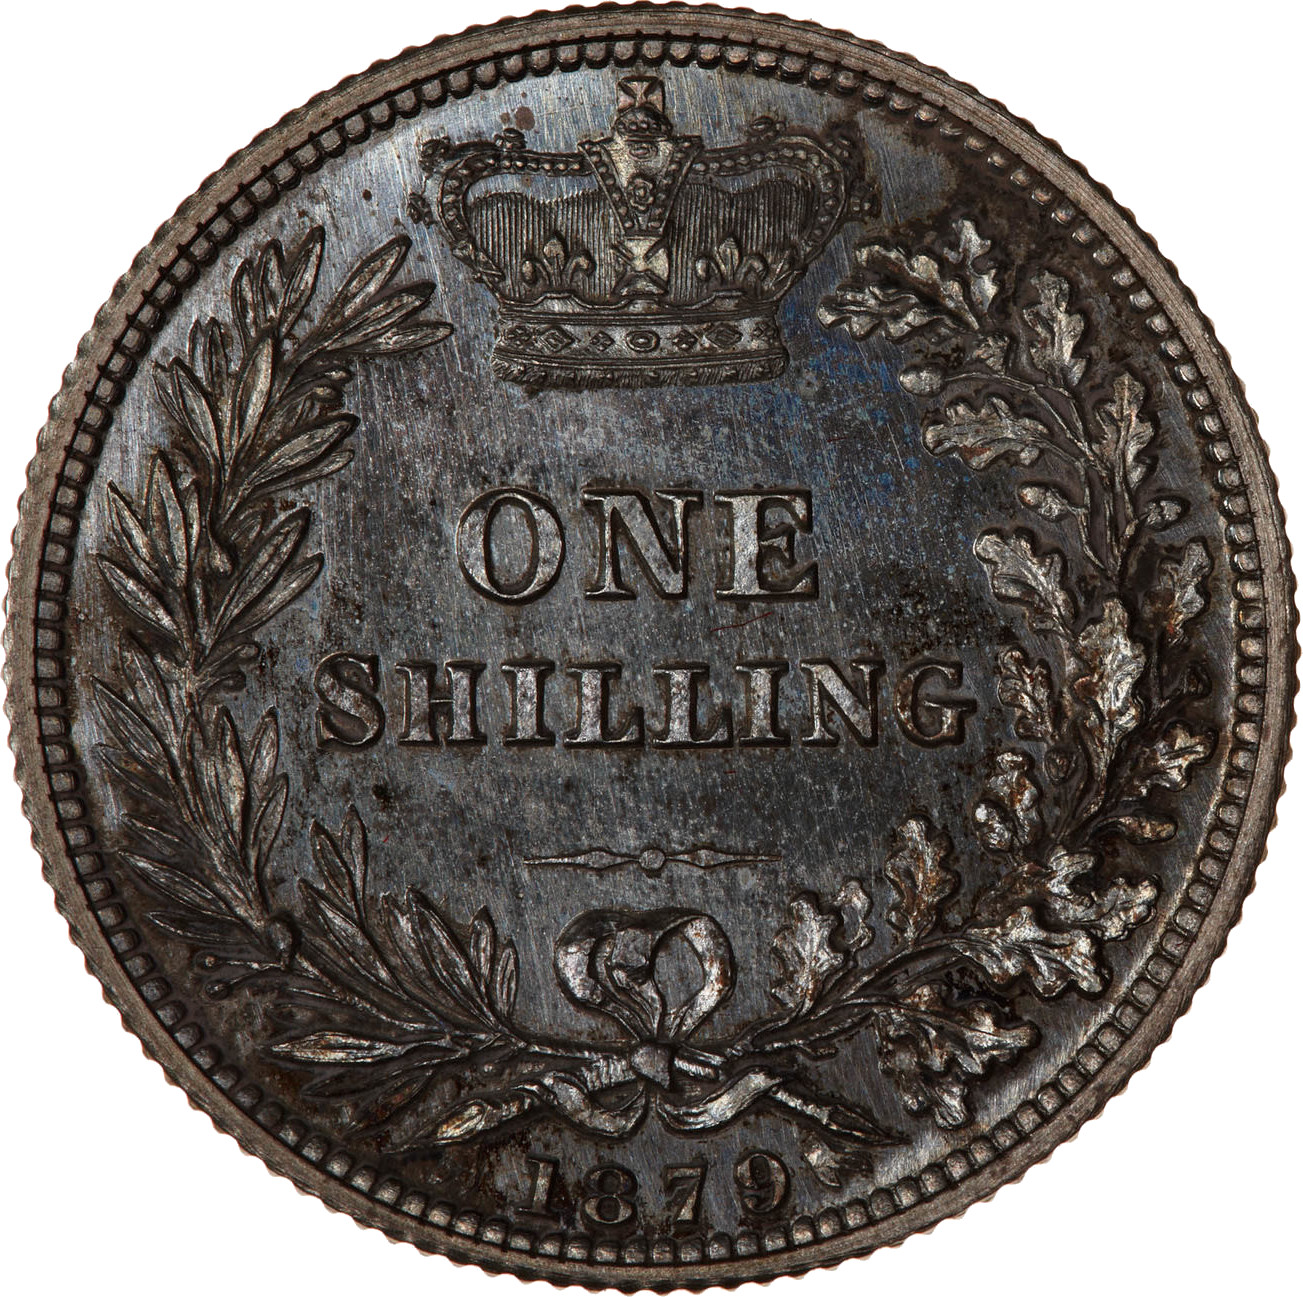 Shilling 1879: Photo Proof Coin - Shilling, Queen Victoria, Great Britain, 1879